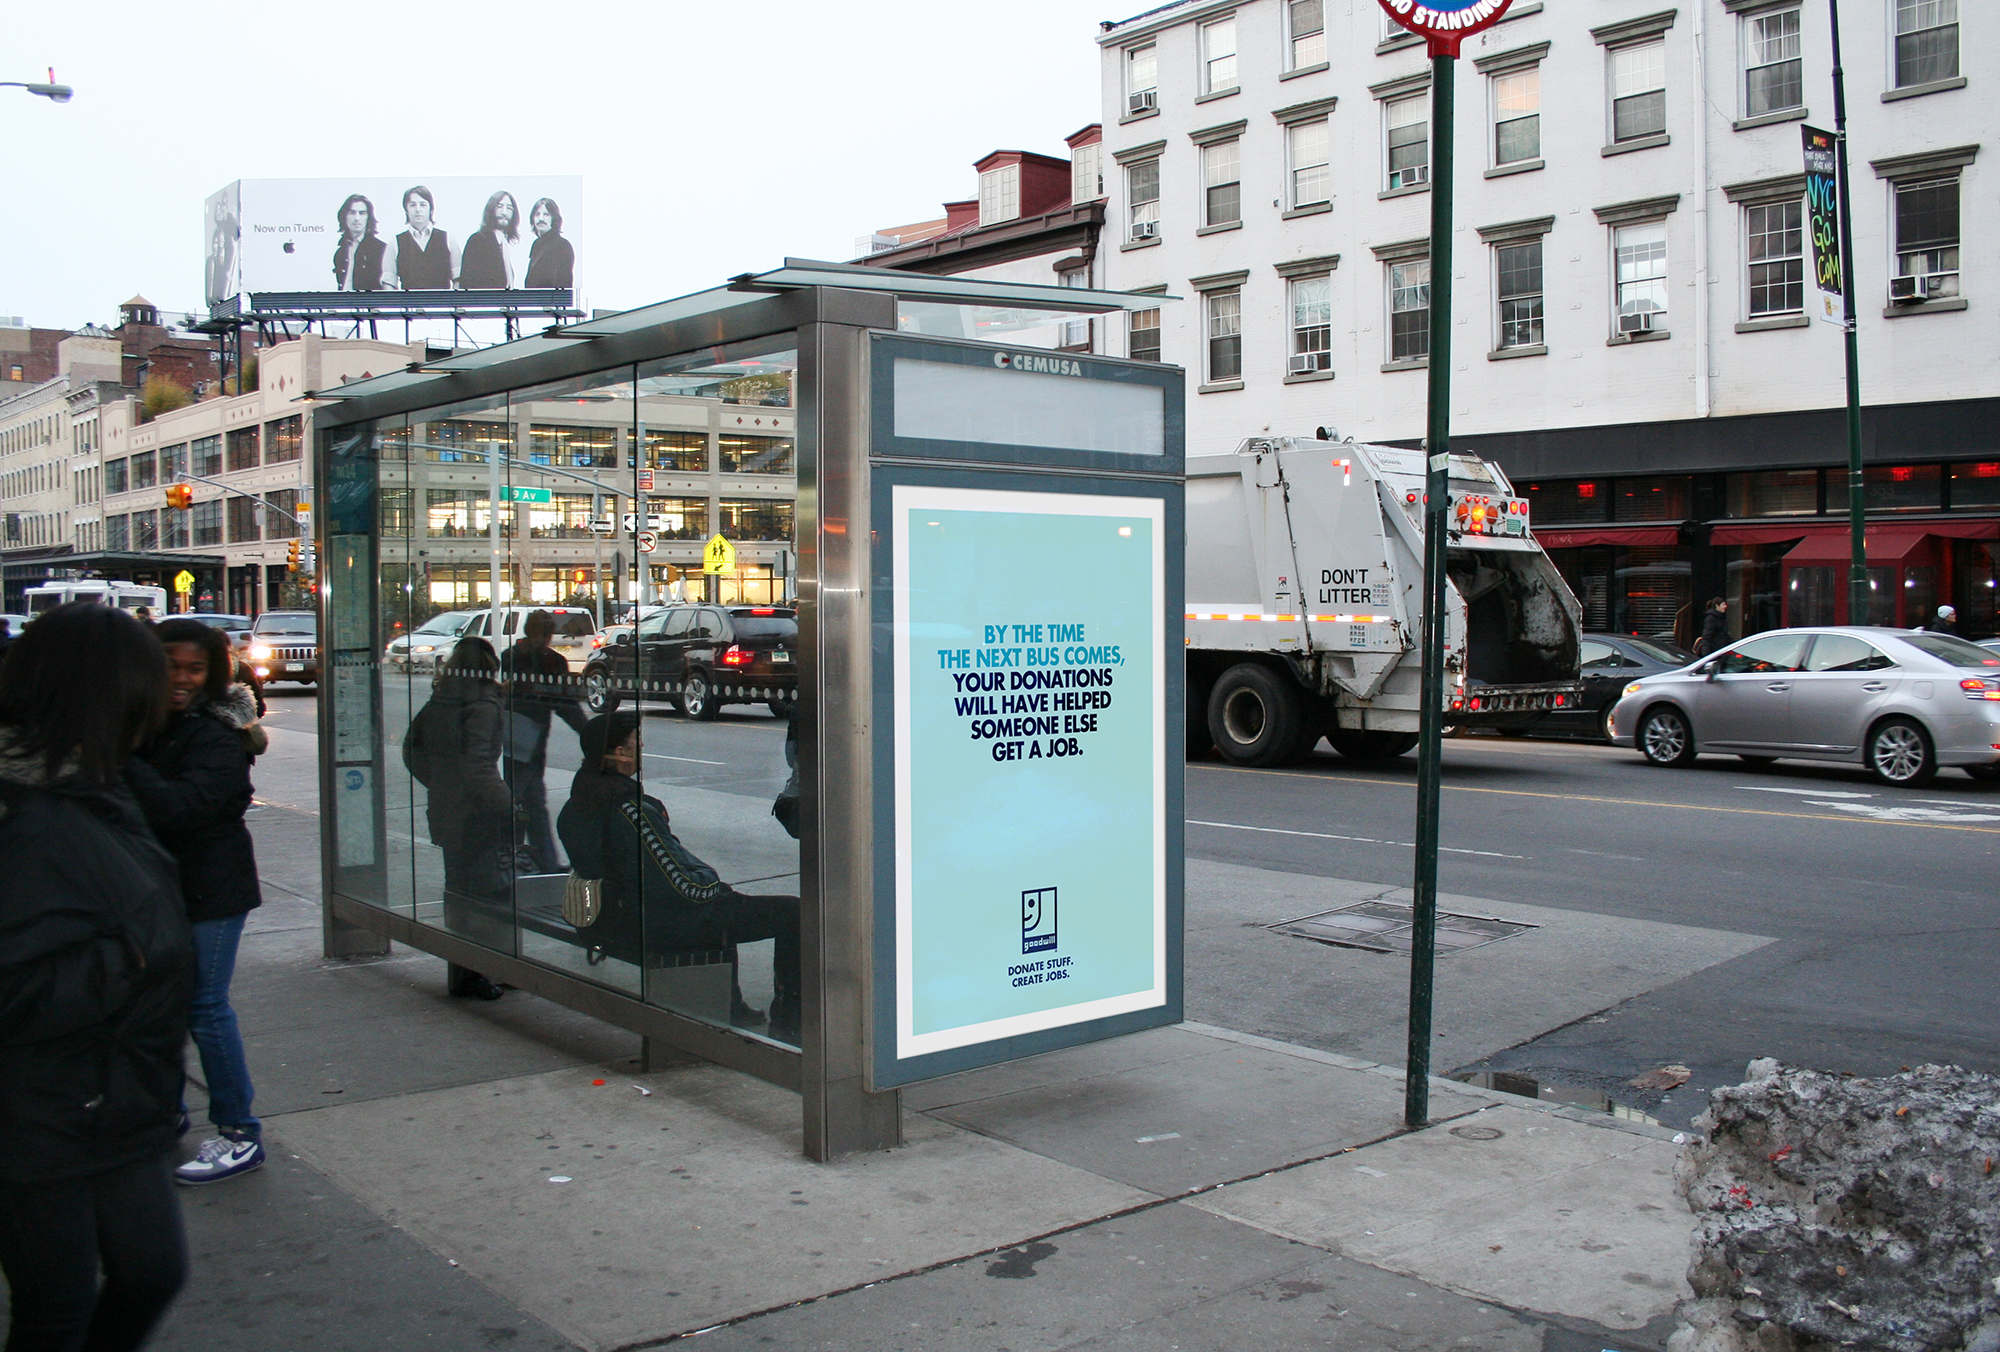 goodwill_Bus_Stop_Ad_2000px_2000_c.jpg